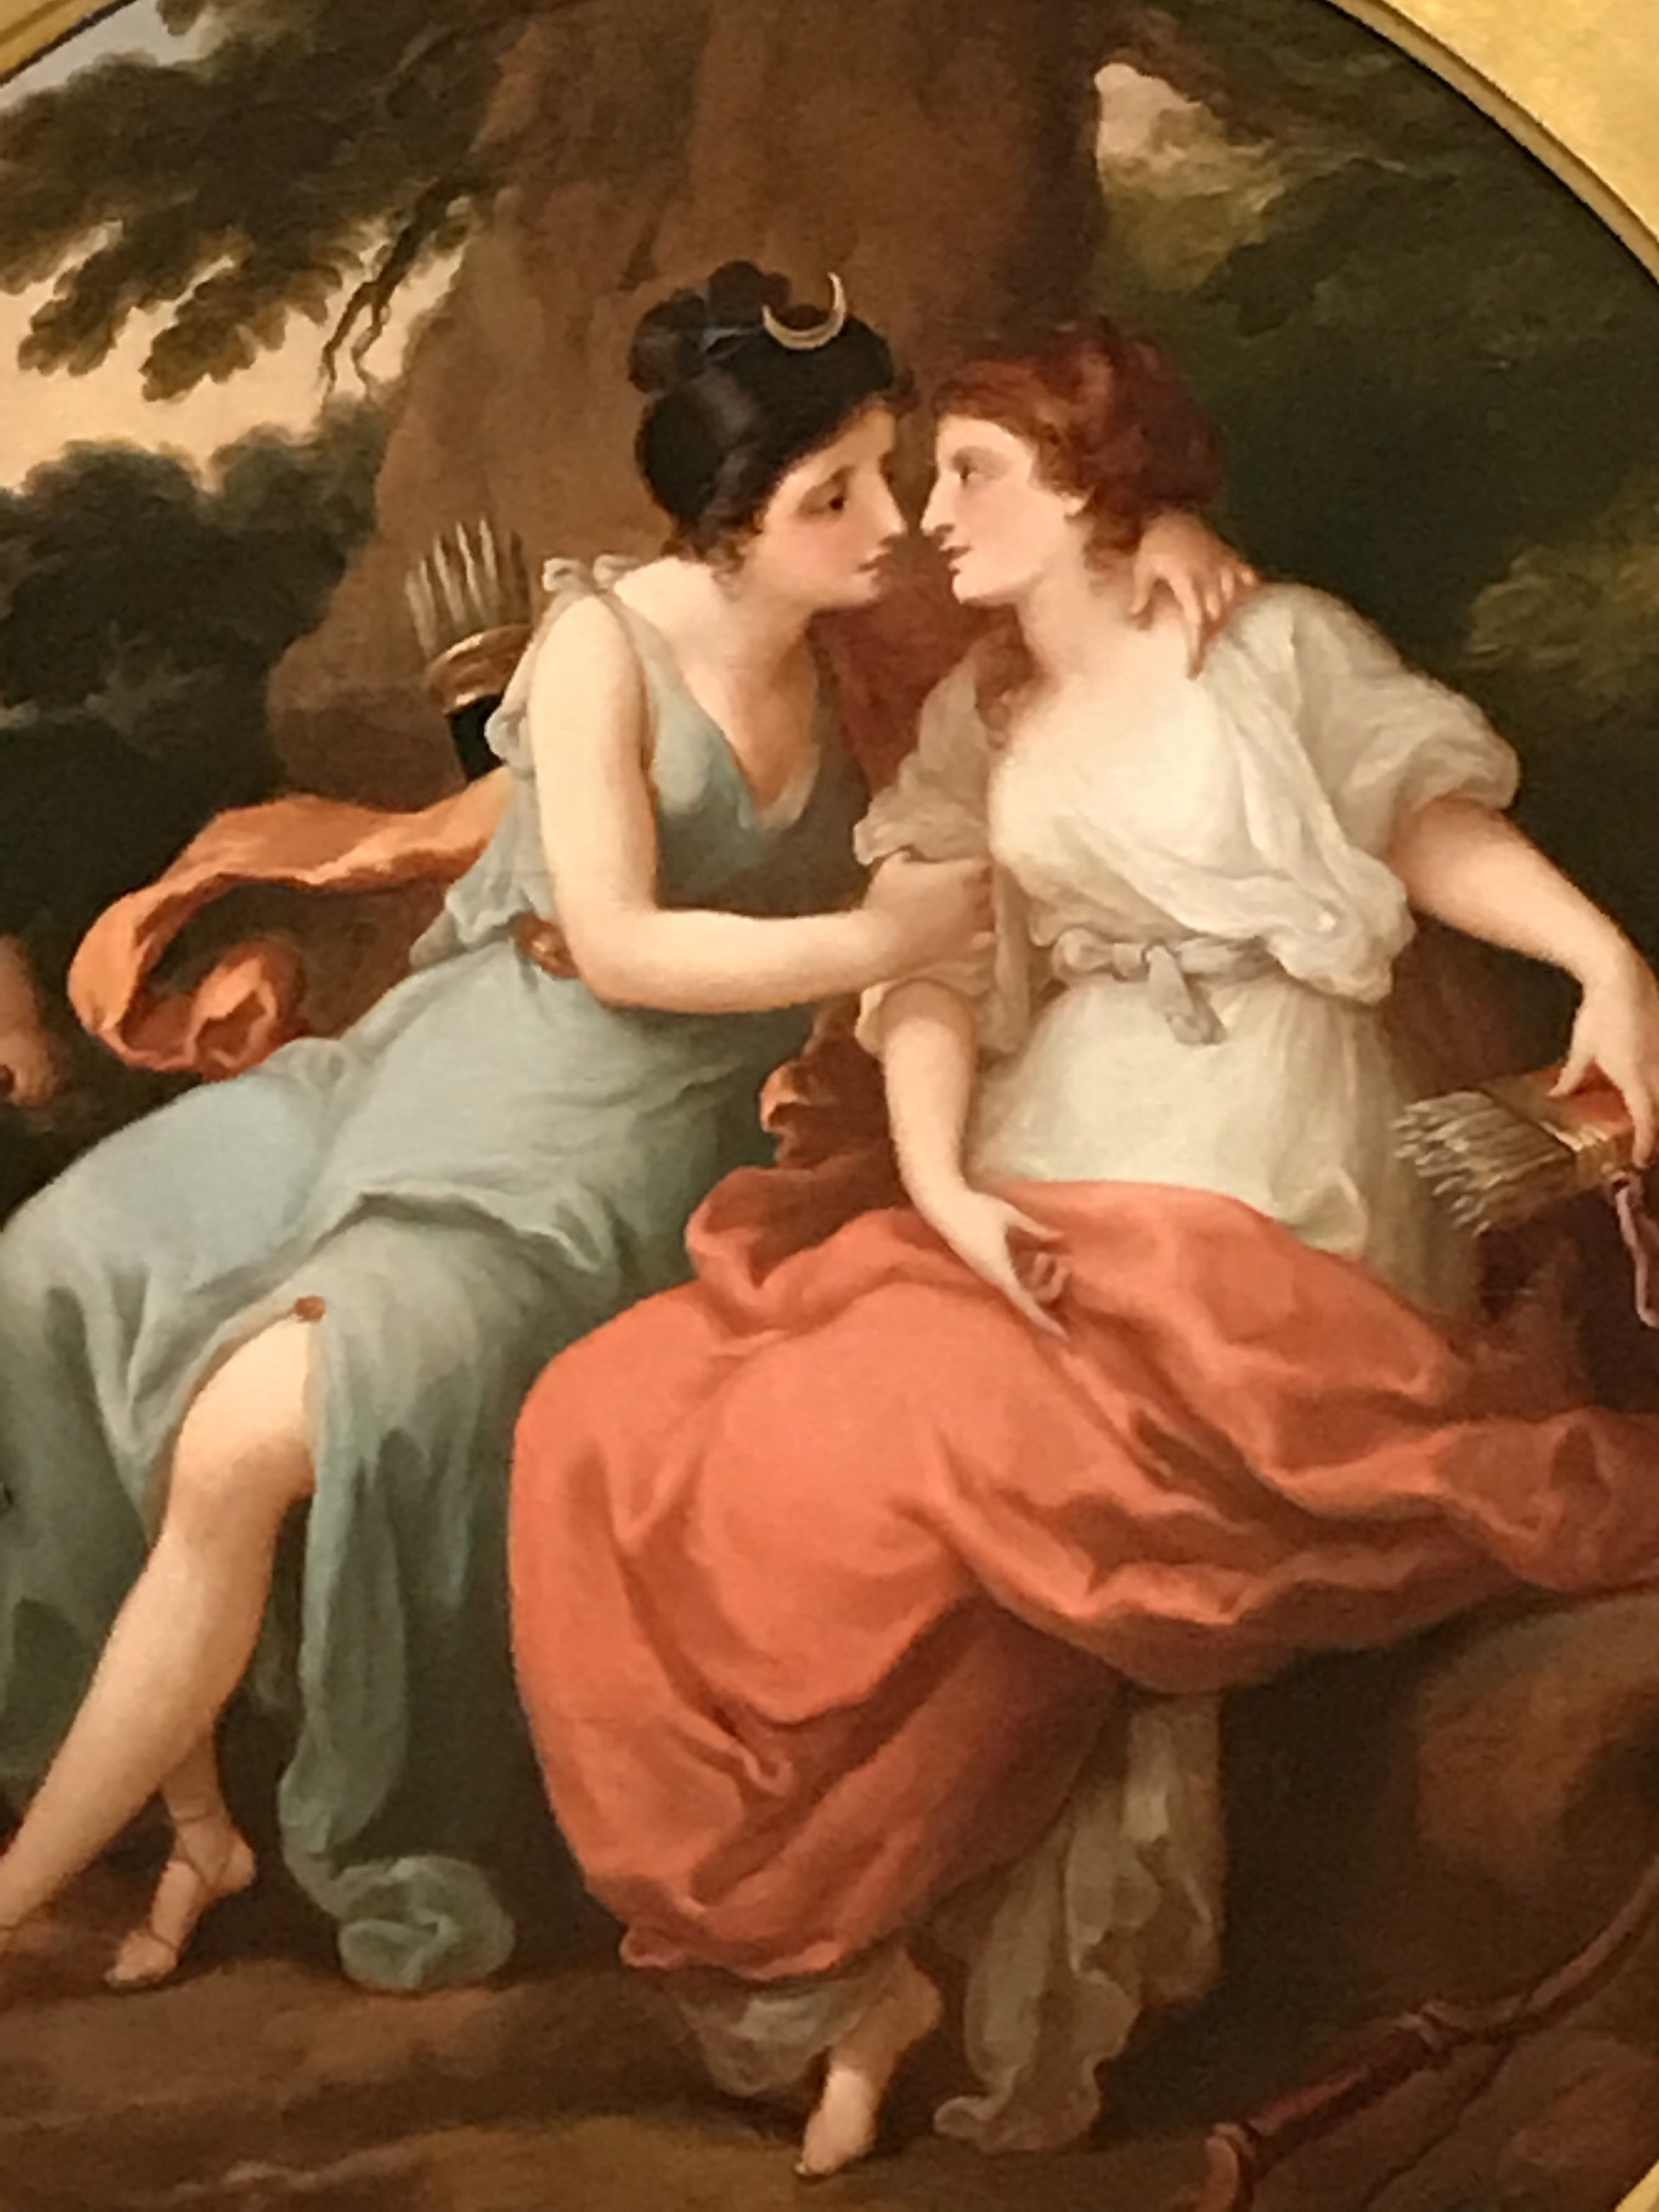 Classical lesbian videos opinion you